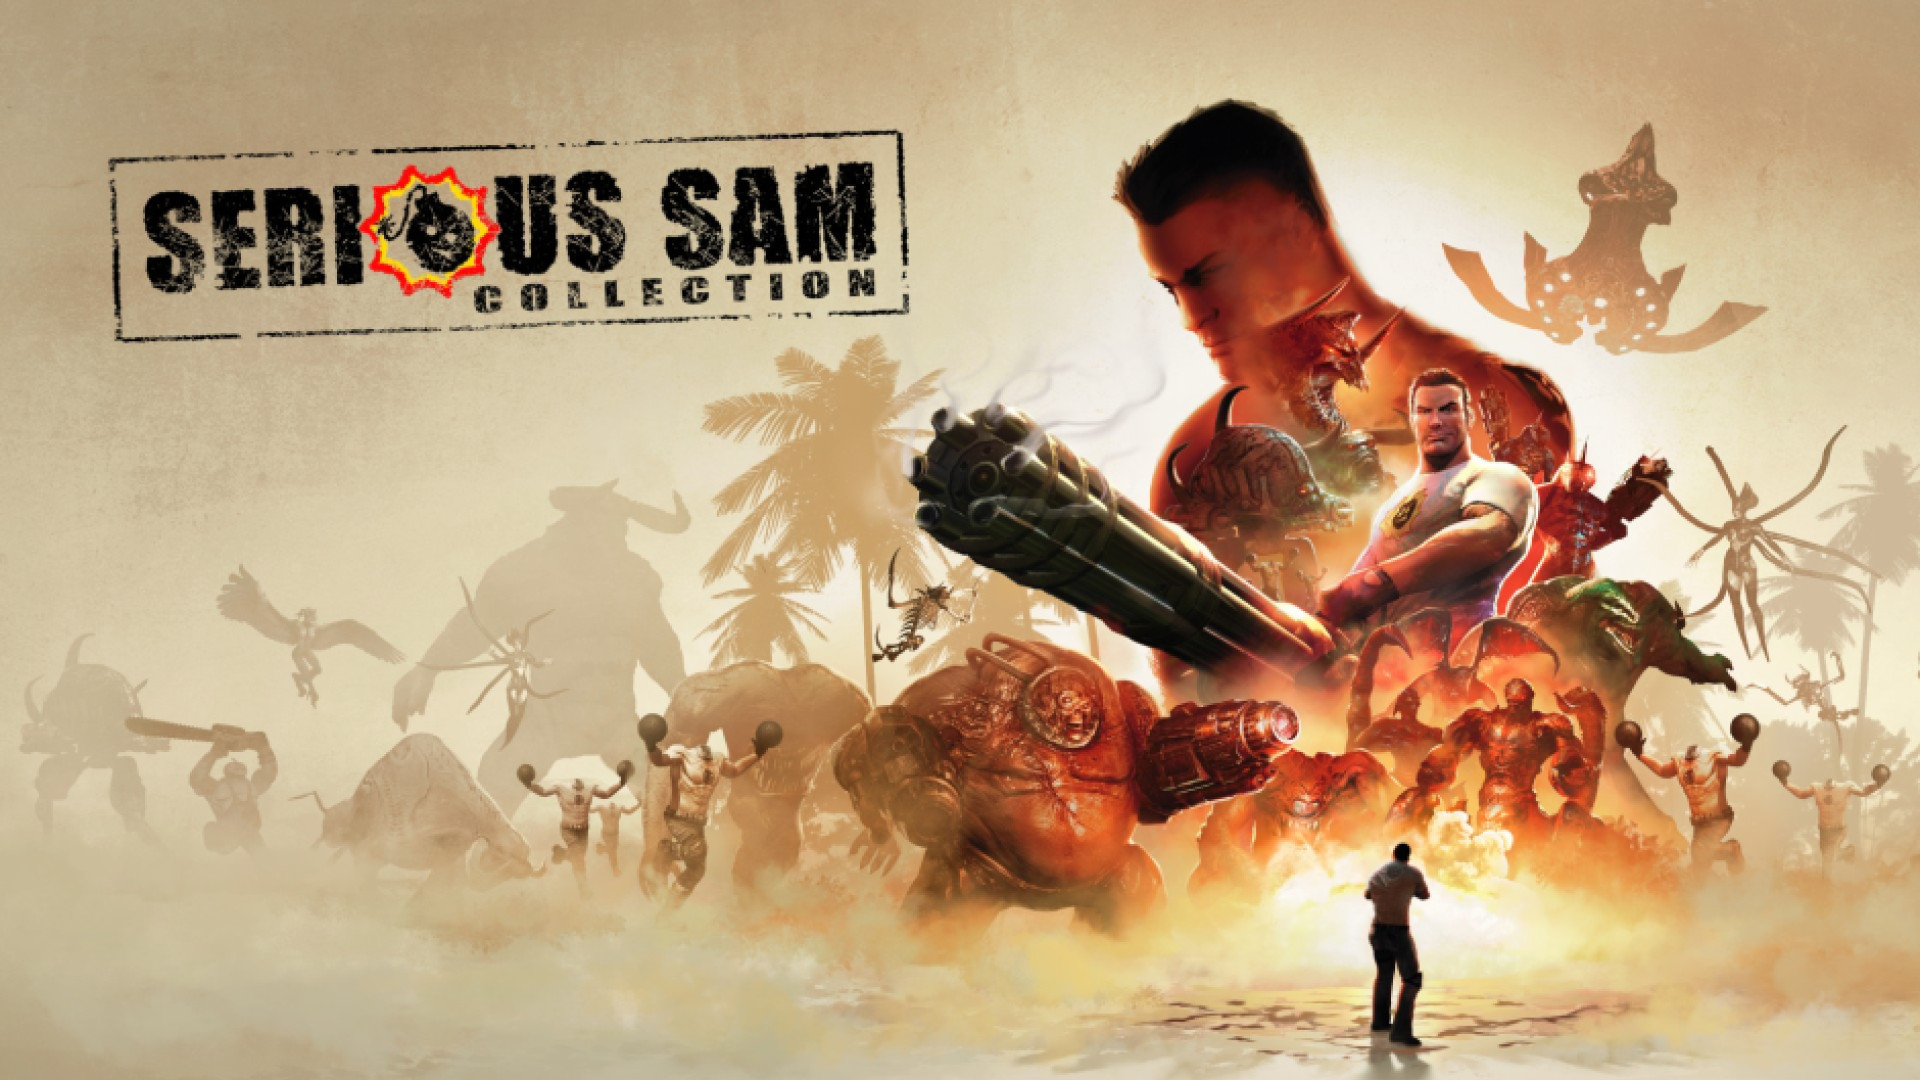 Collection Serious Sam